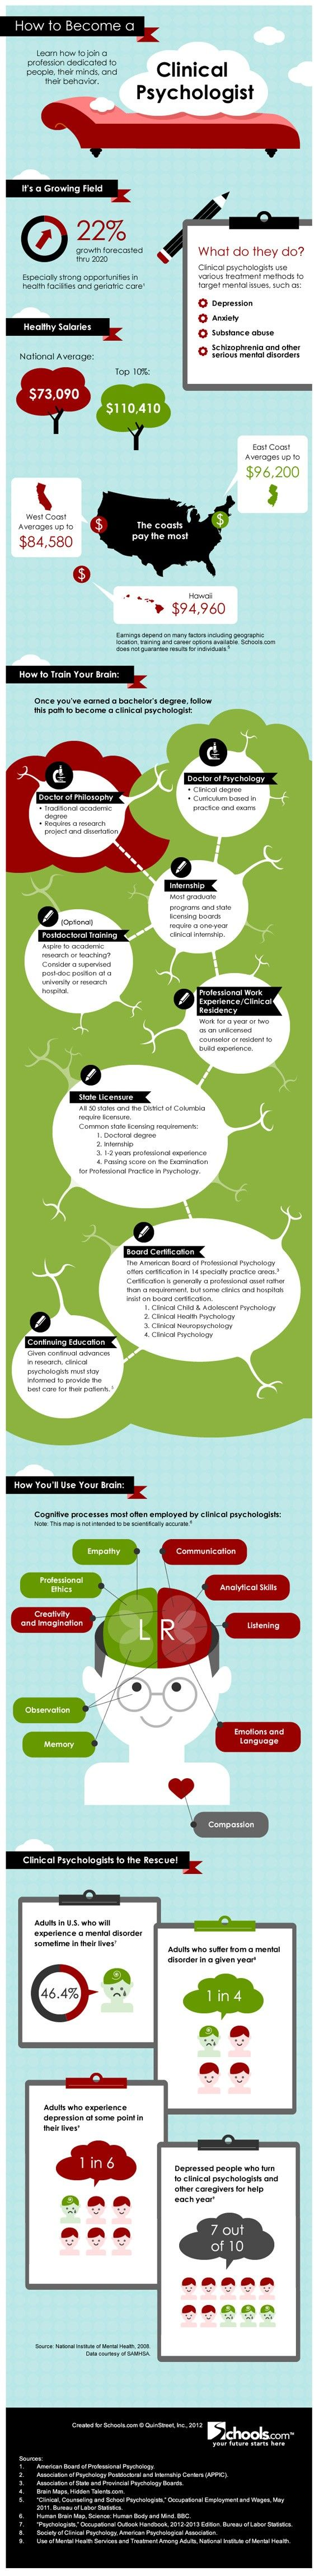 How To Become A Clinical Psychologist [Infographic] - Careers Articles.